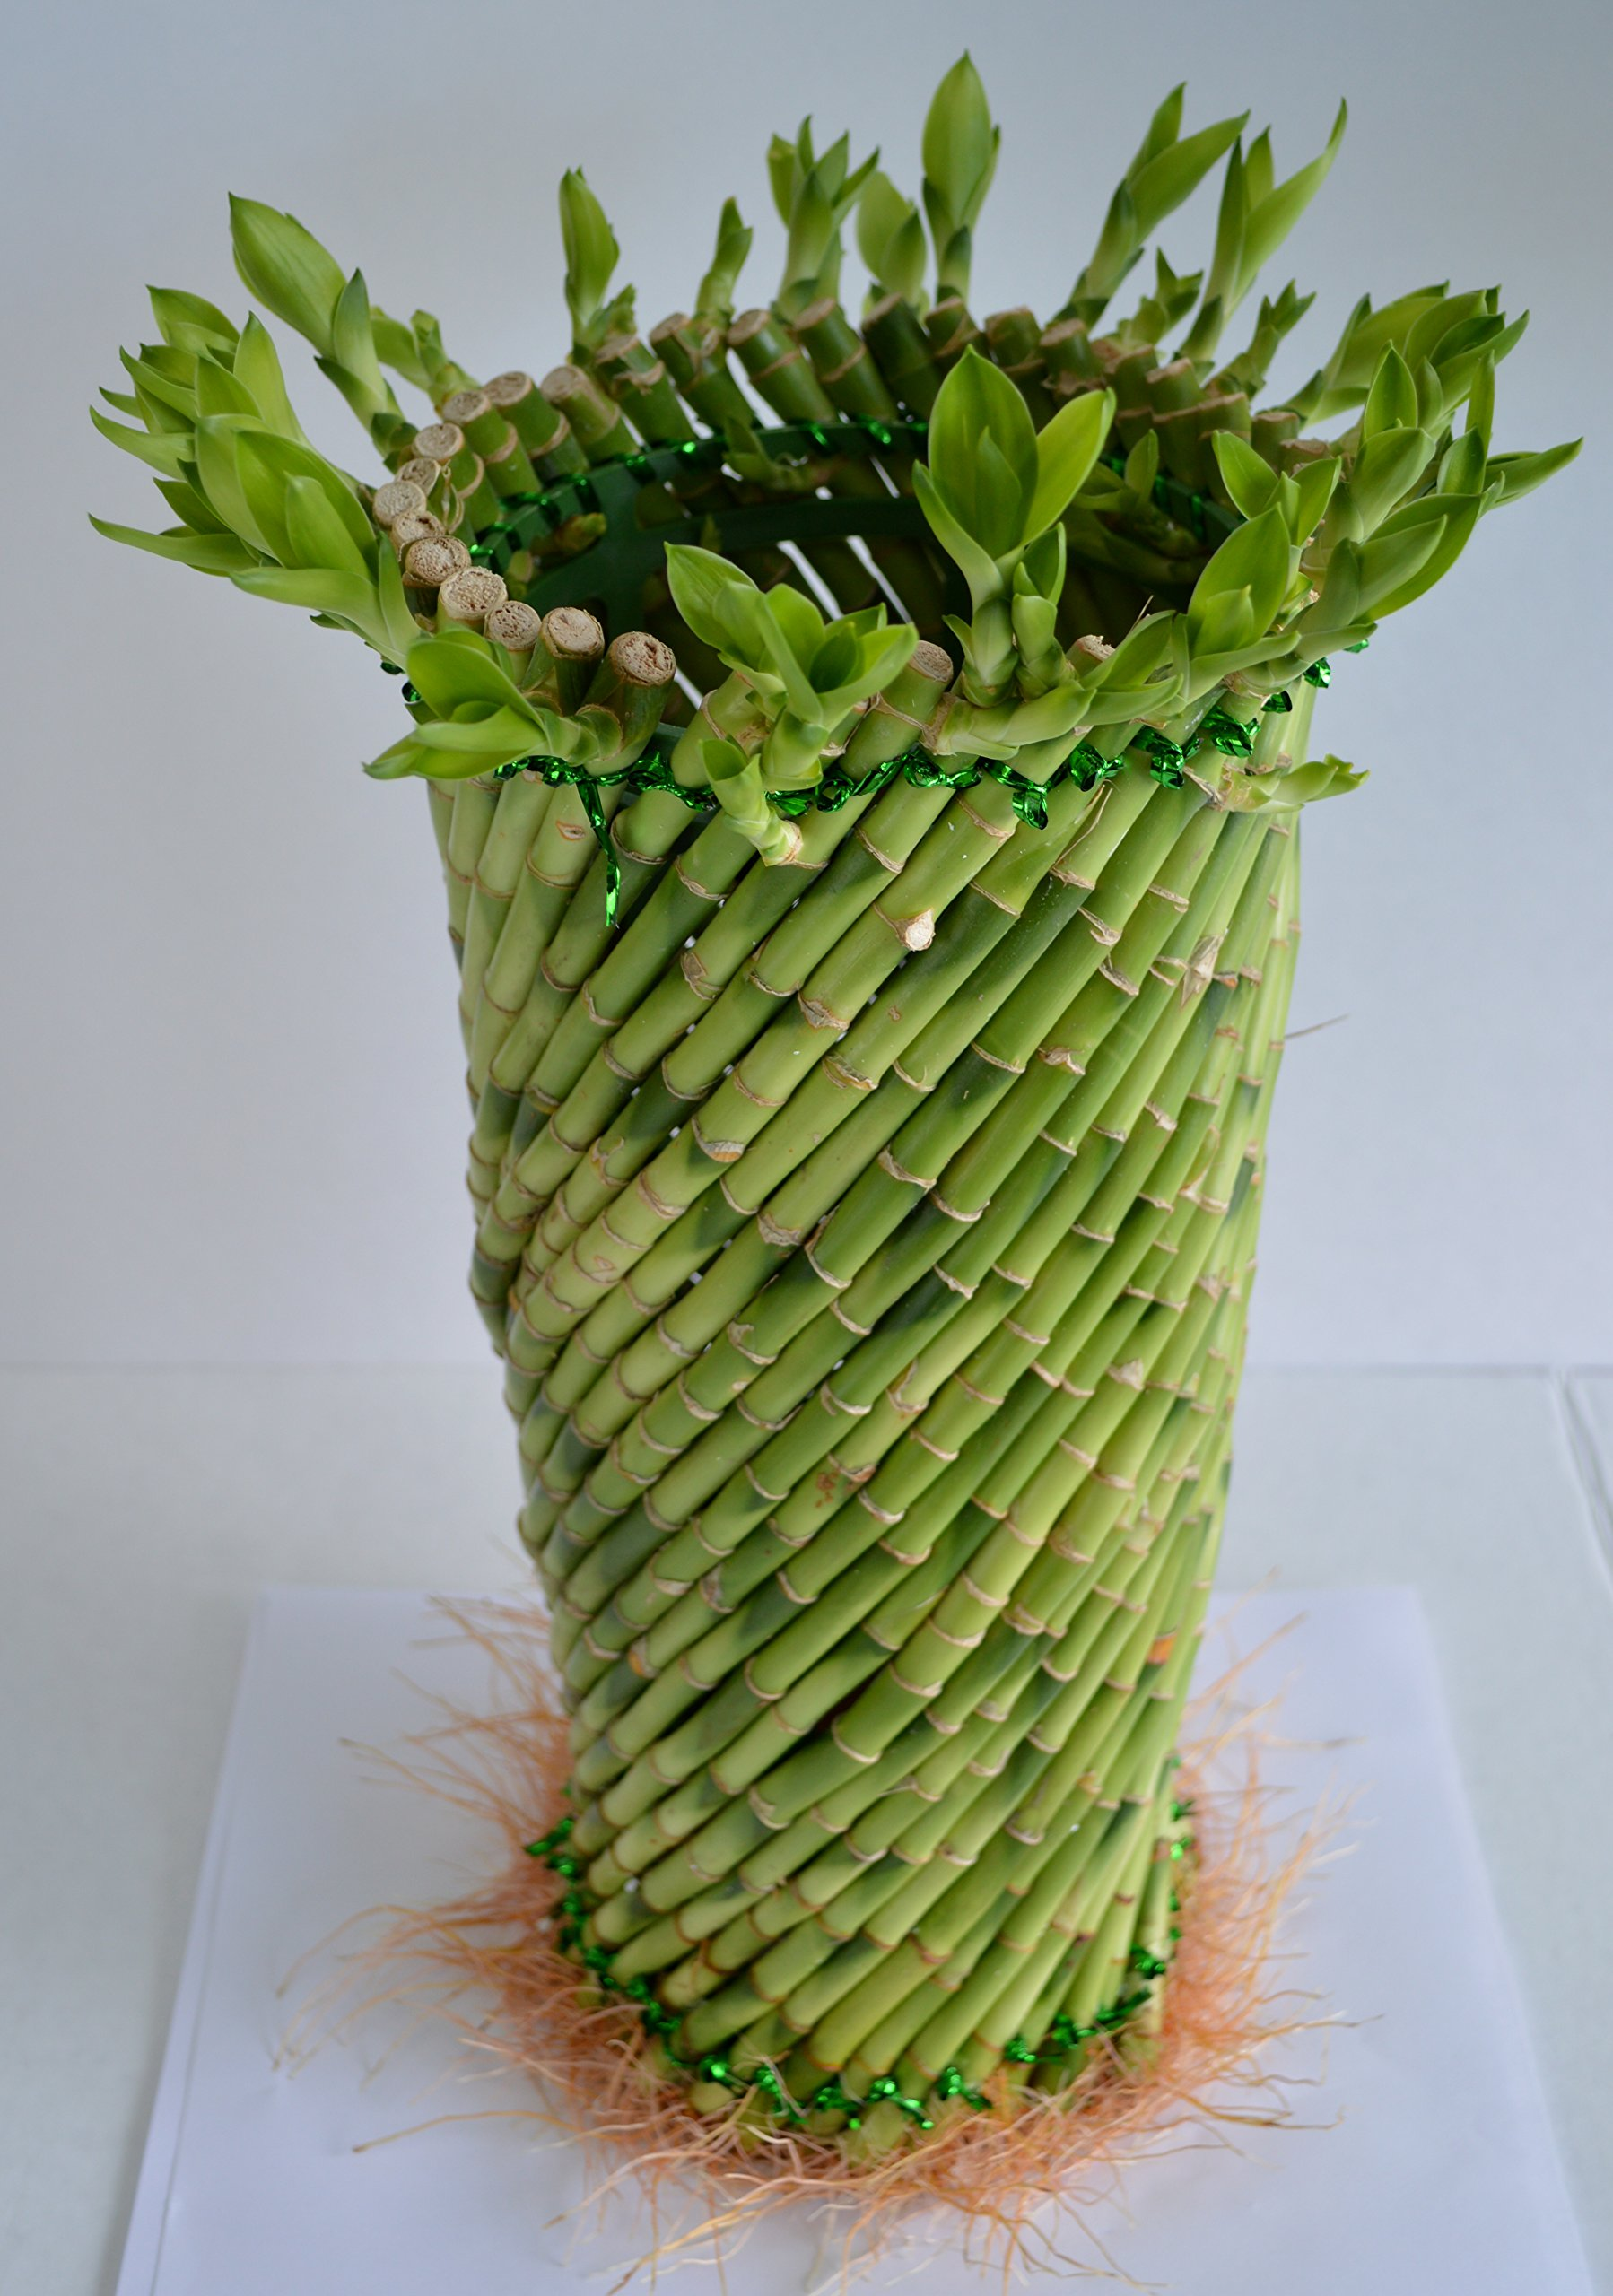 Jumbo Lucky Bamboo twisted design 8'' tall and 3.5'' in width from JM Bamboo